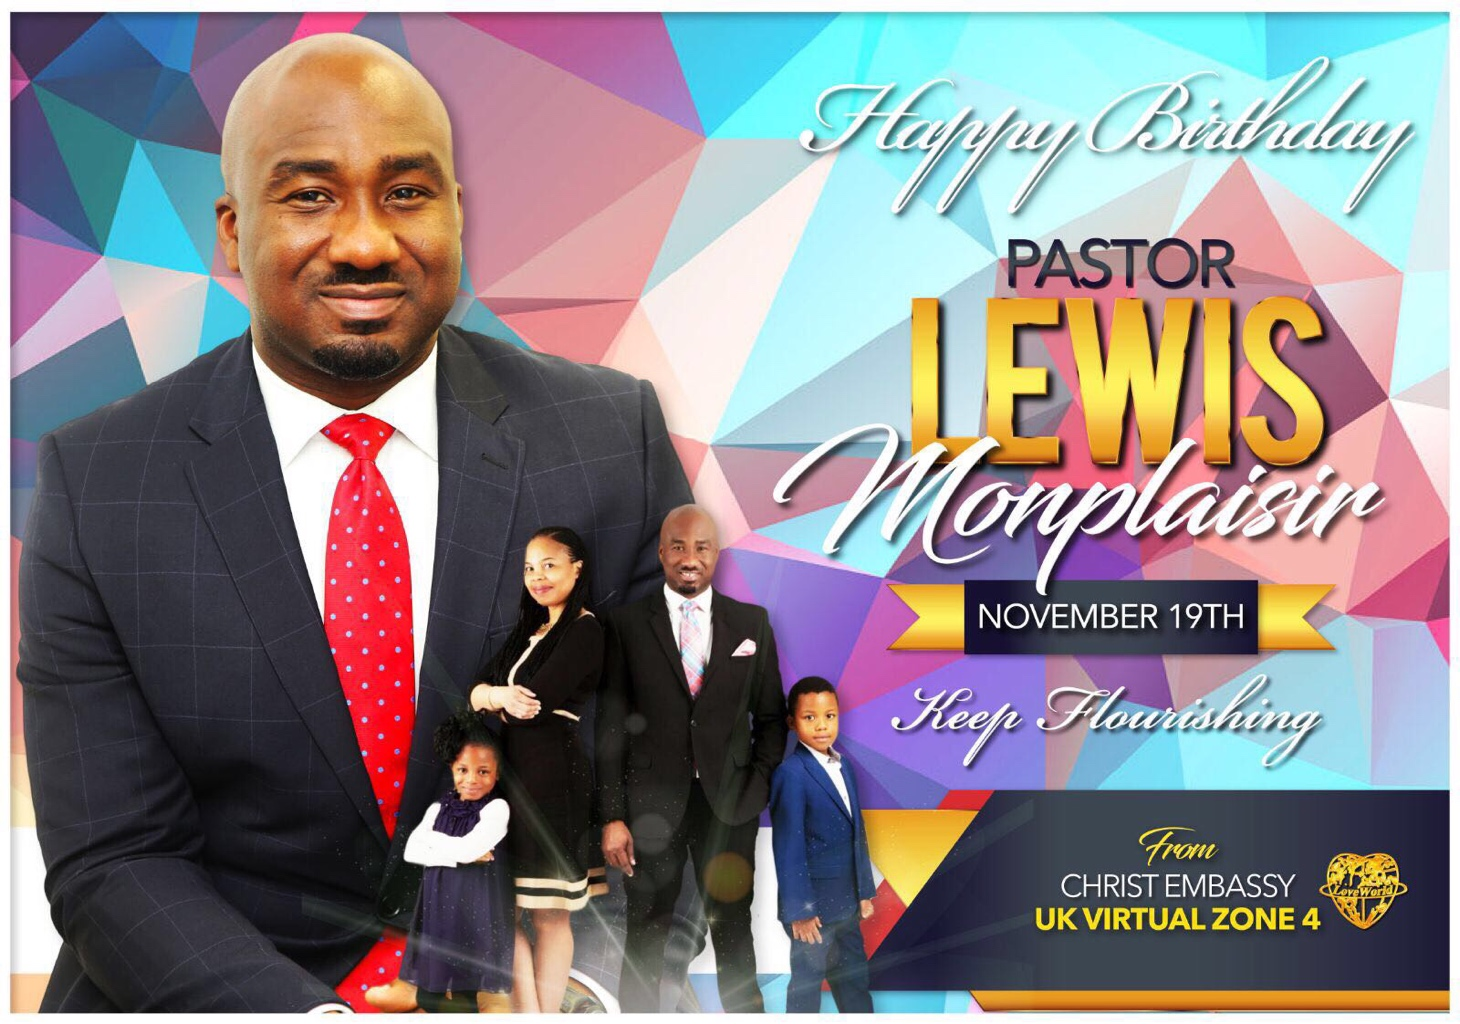 Still celebrating our esteemed Pastor